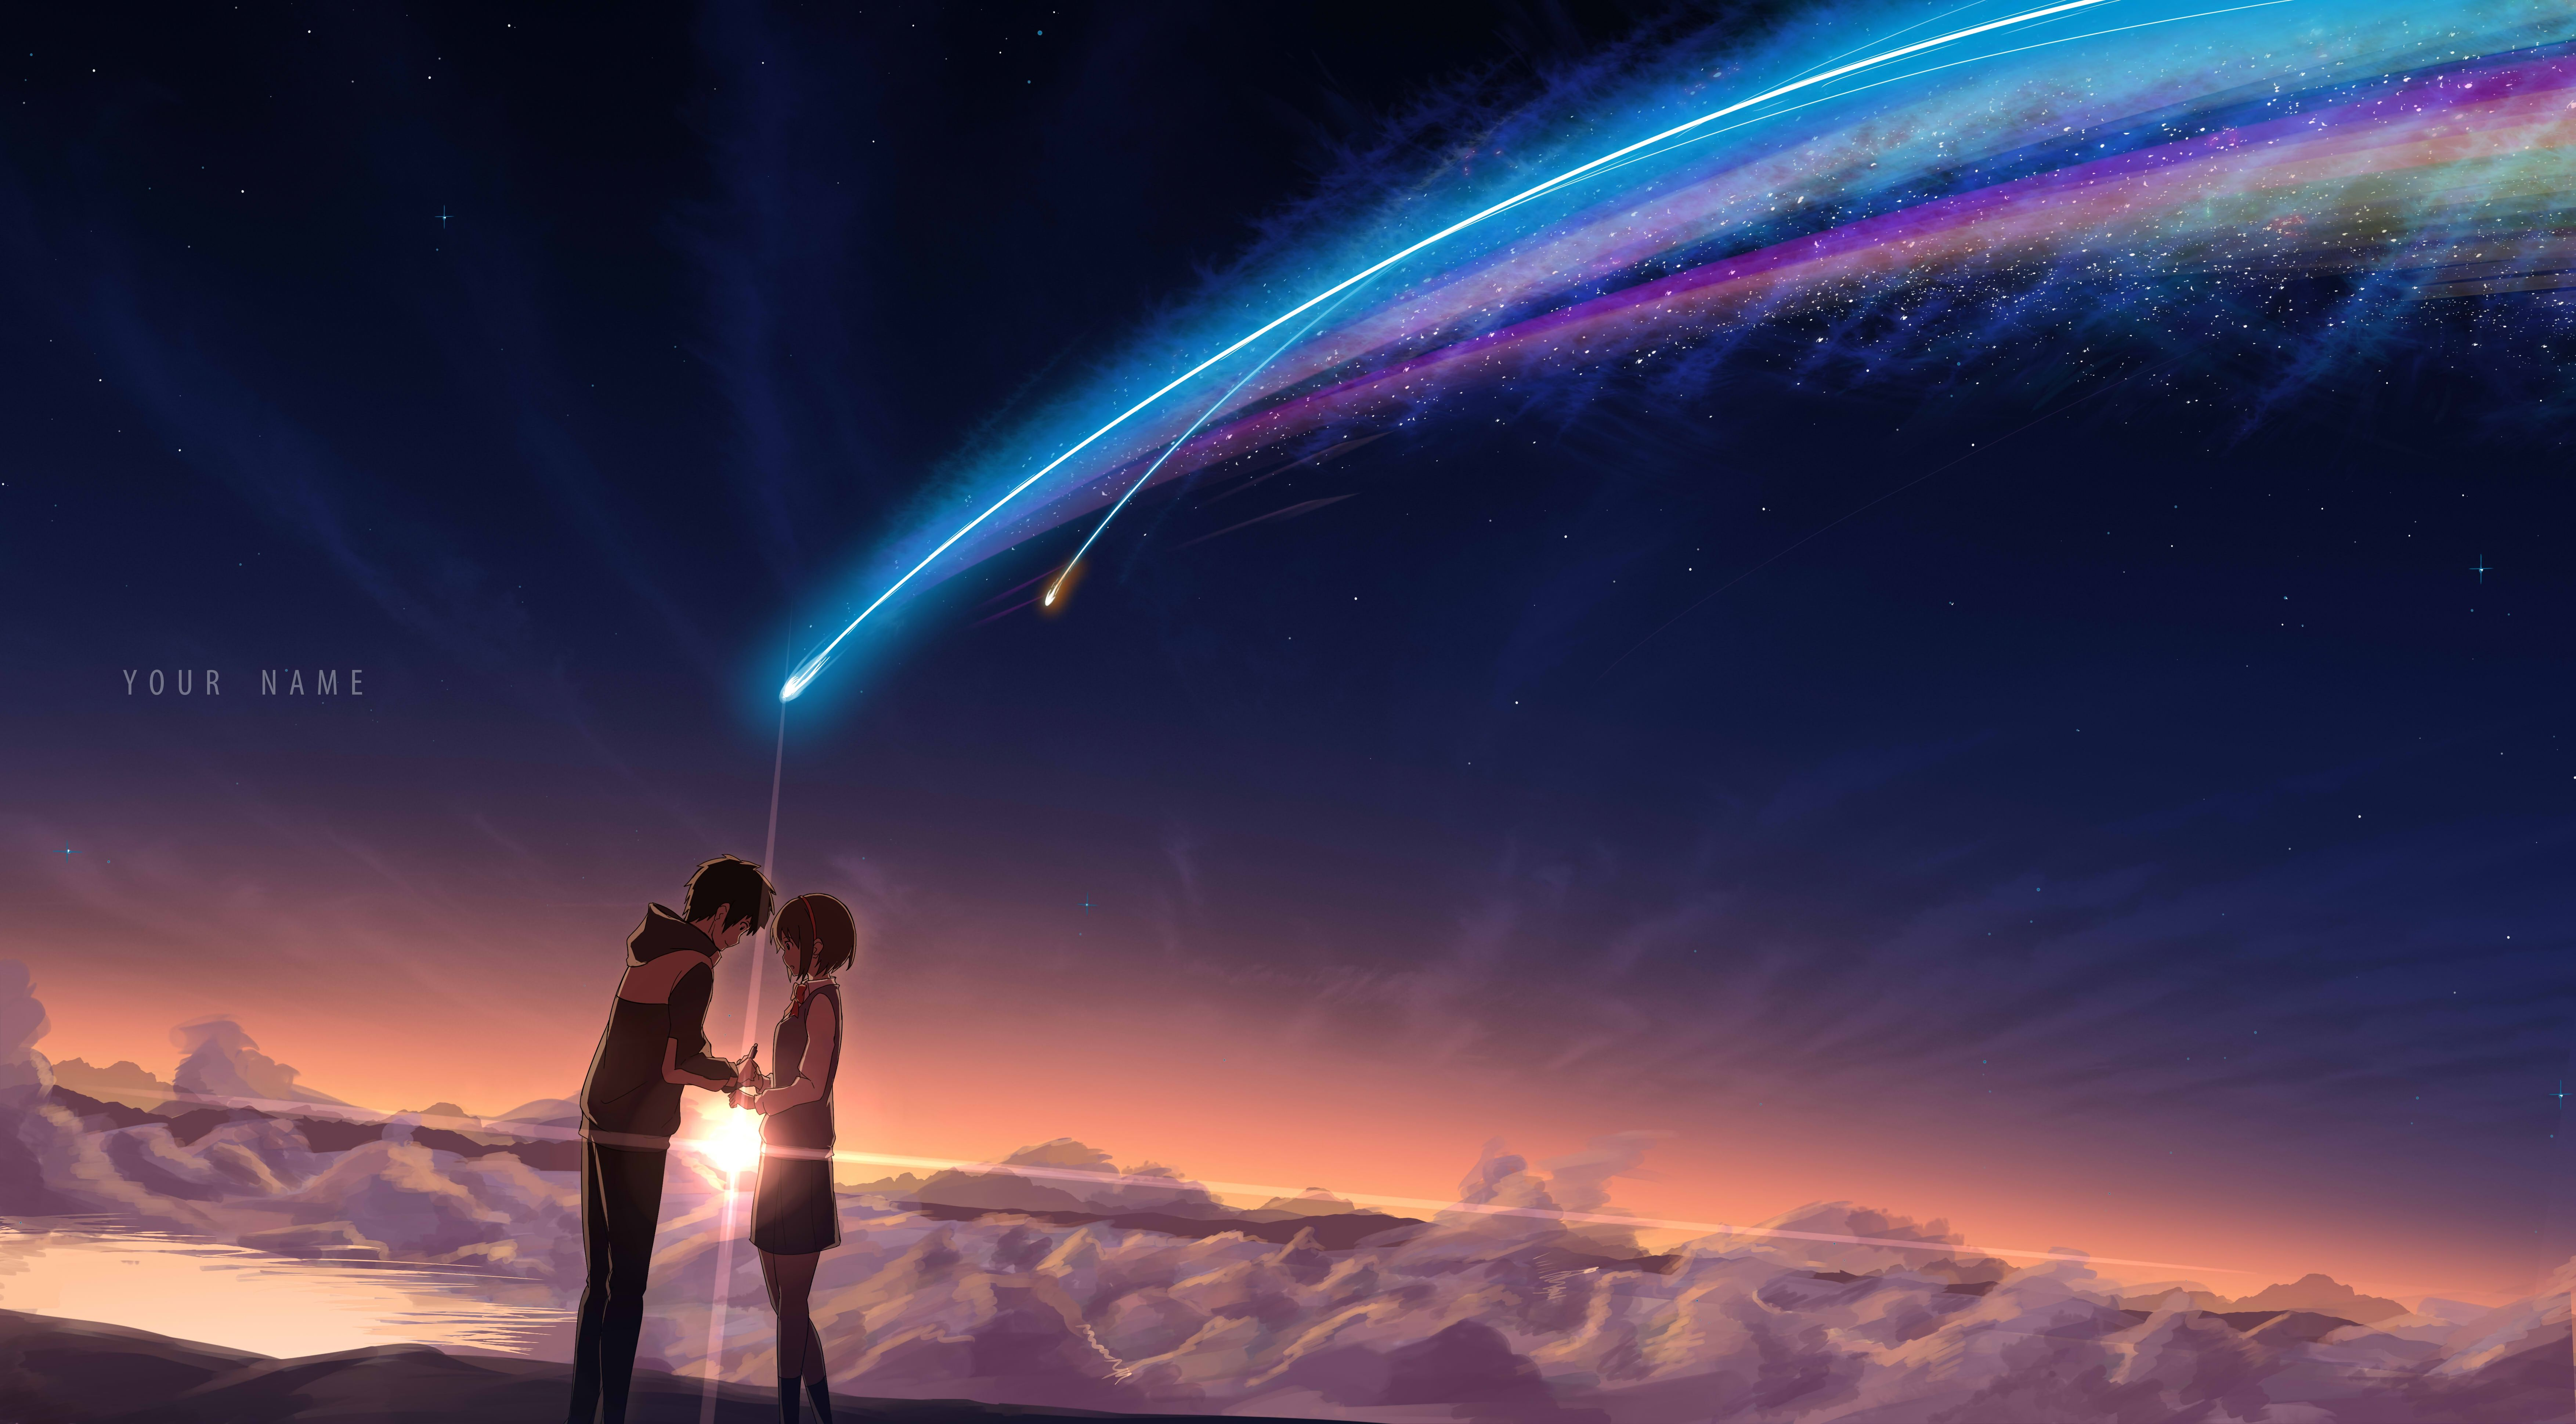 Your Name Wallpapers   Top Your Name Backgrounds 7015x3879